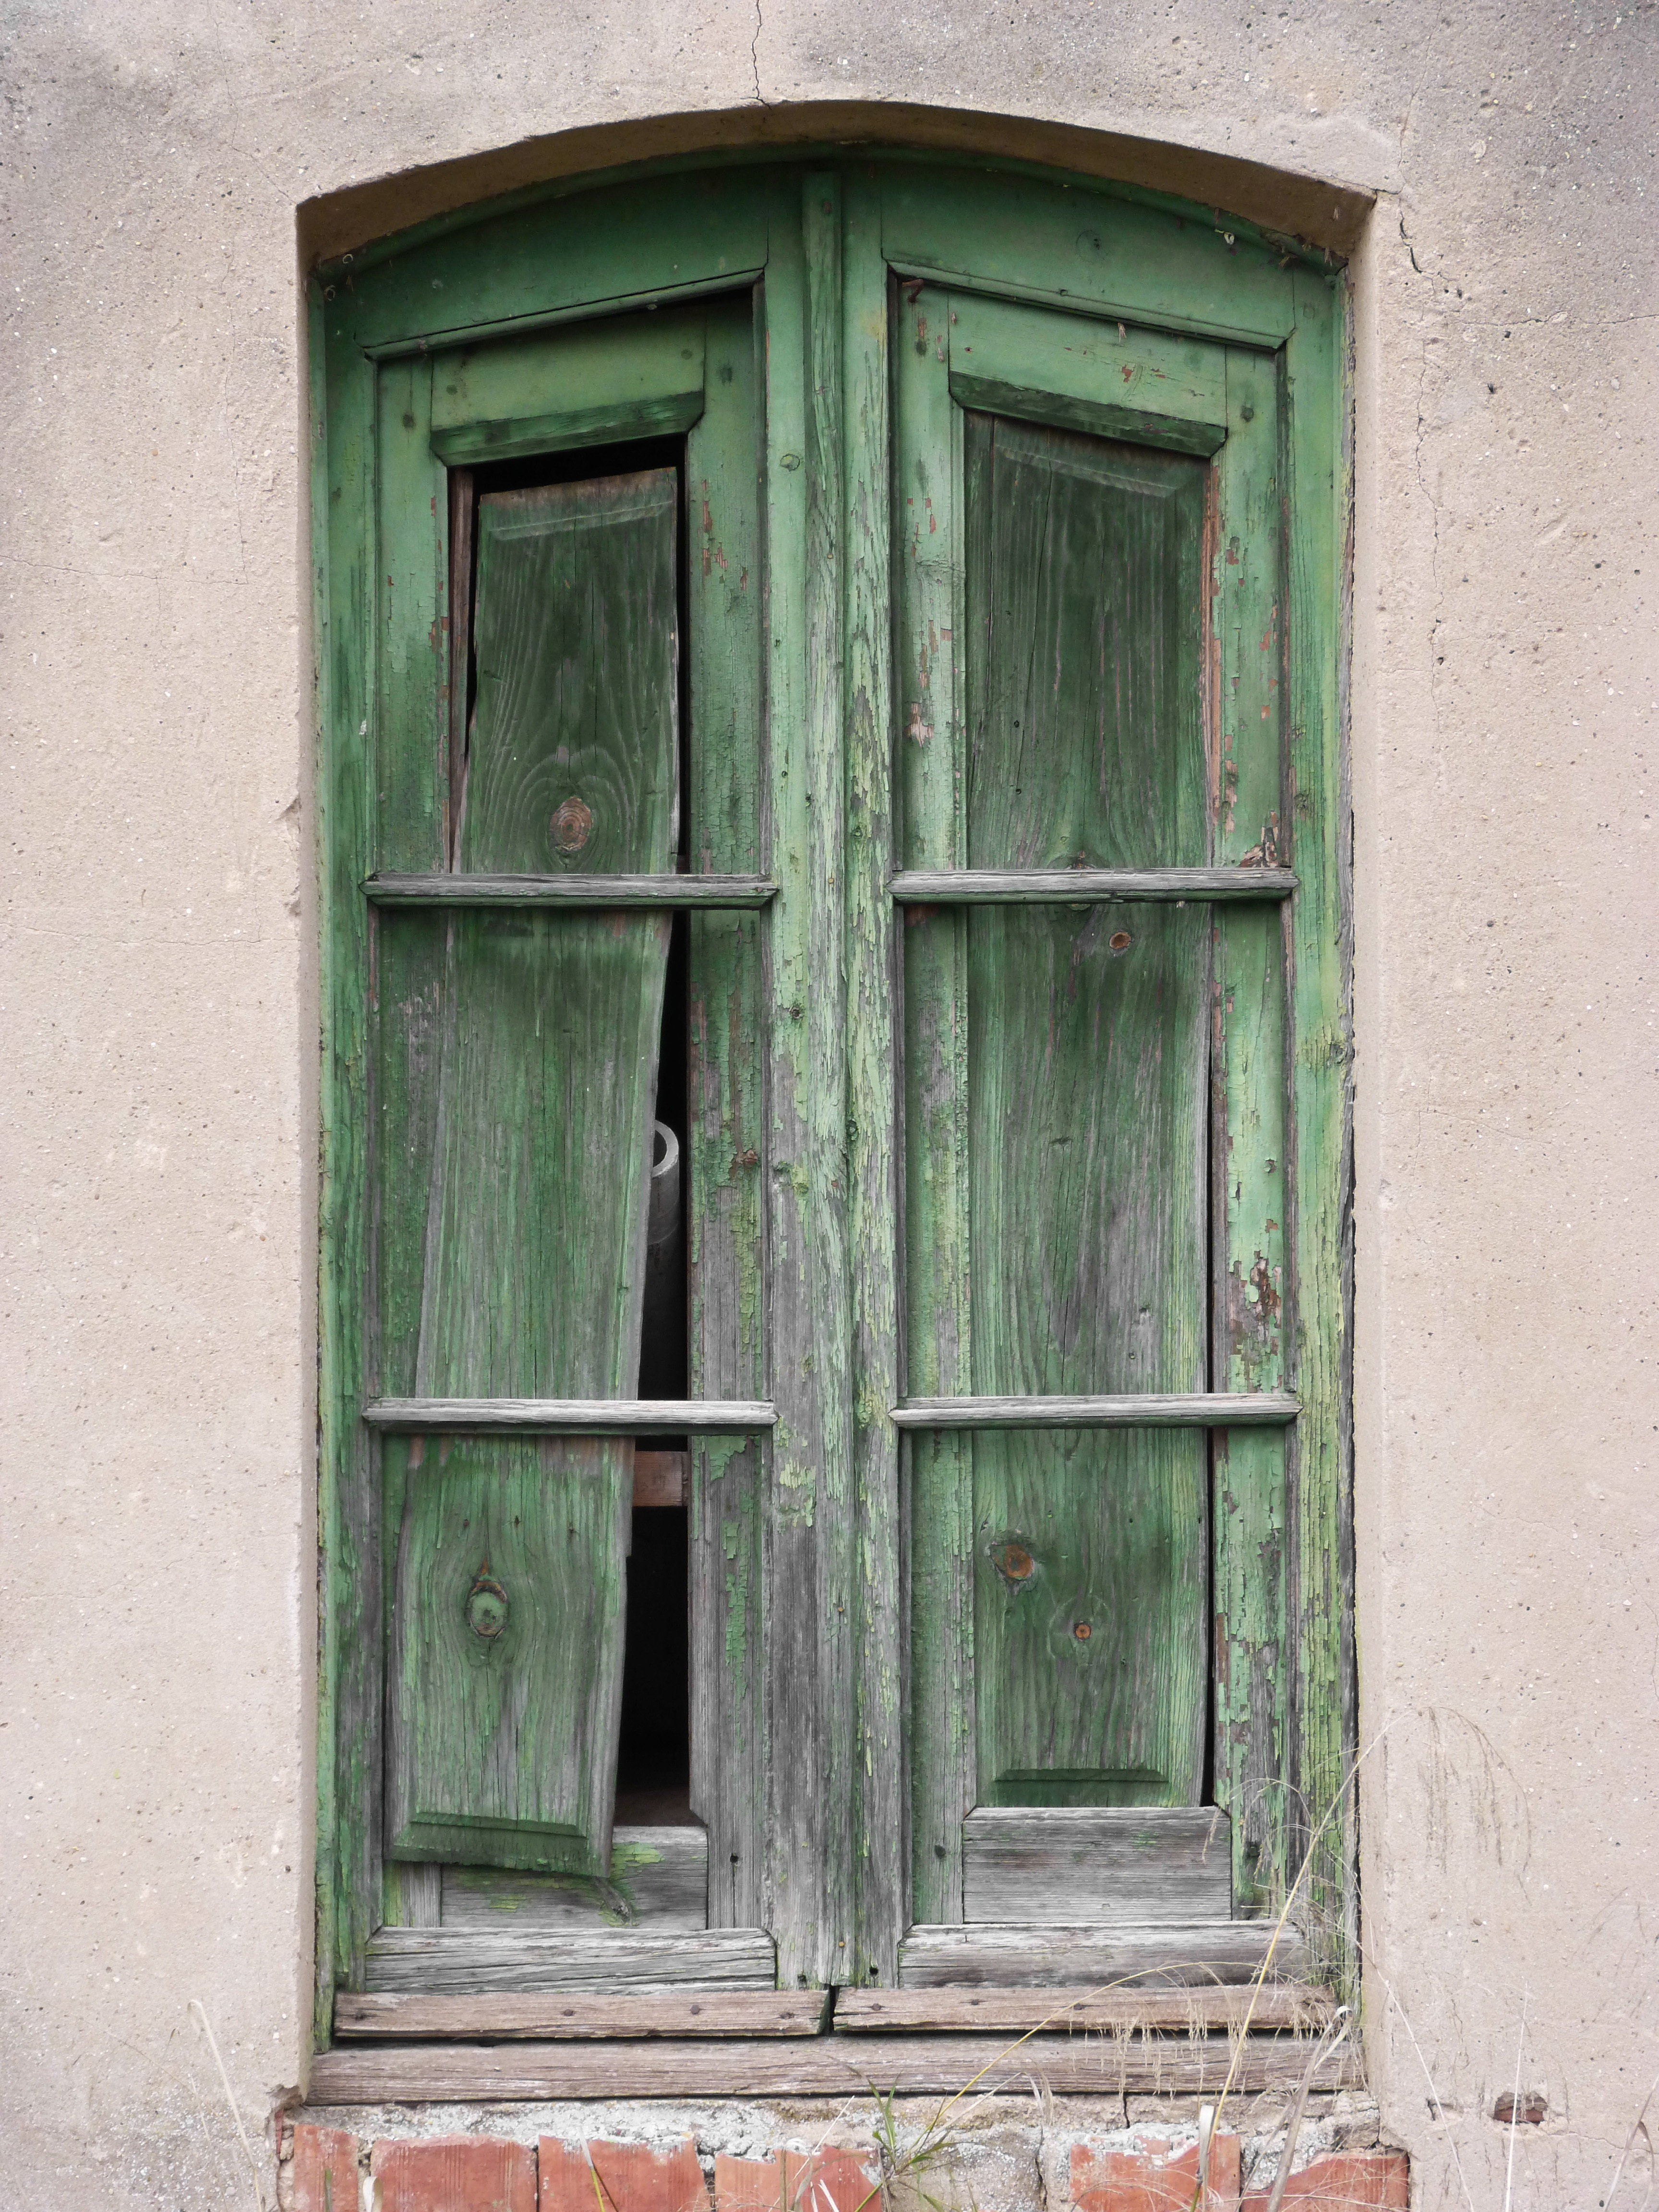 Green wood peeling paint